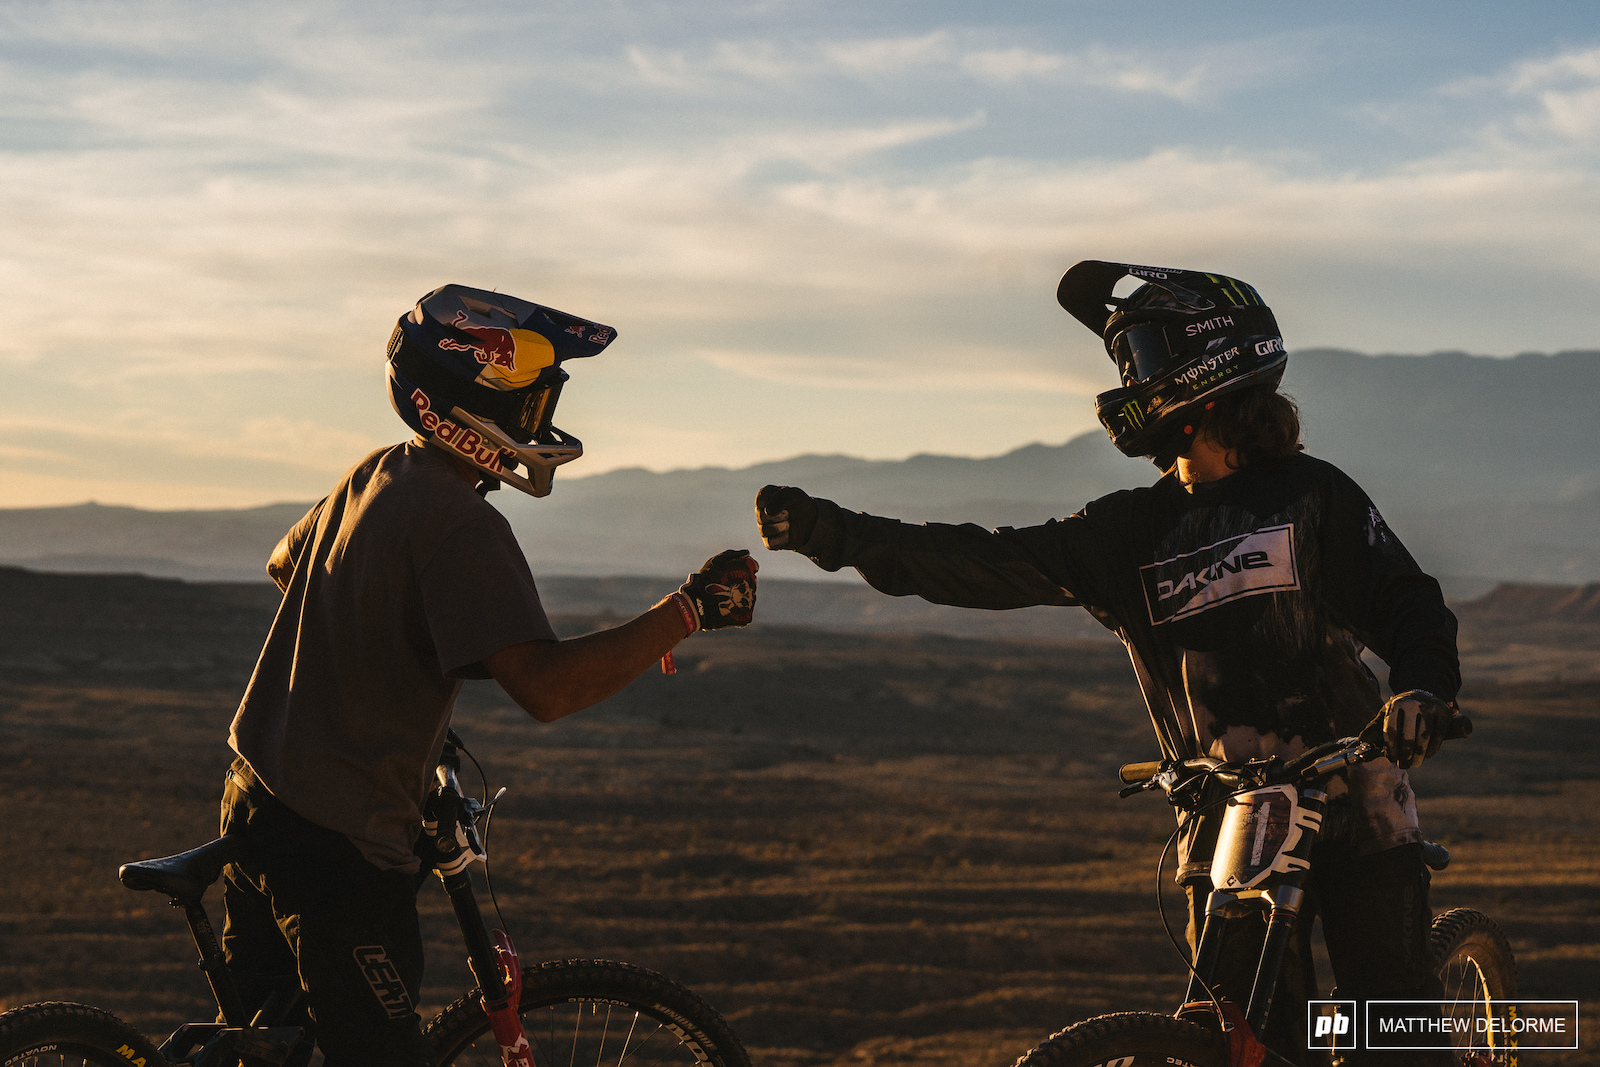 Fist bumps at the end of another long day in the desert.